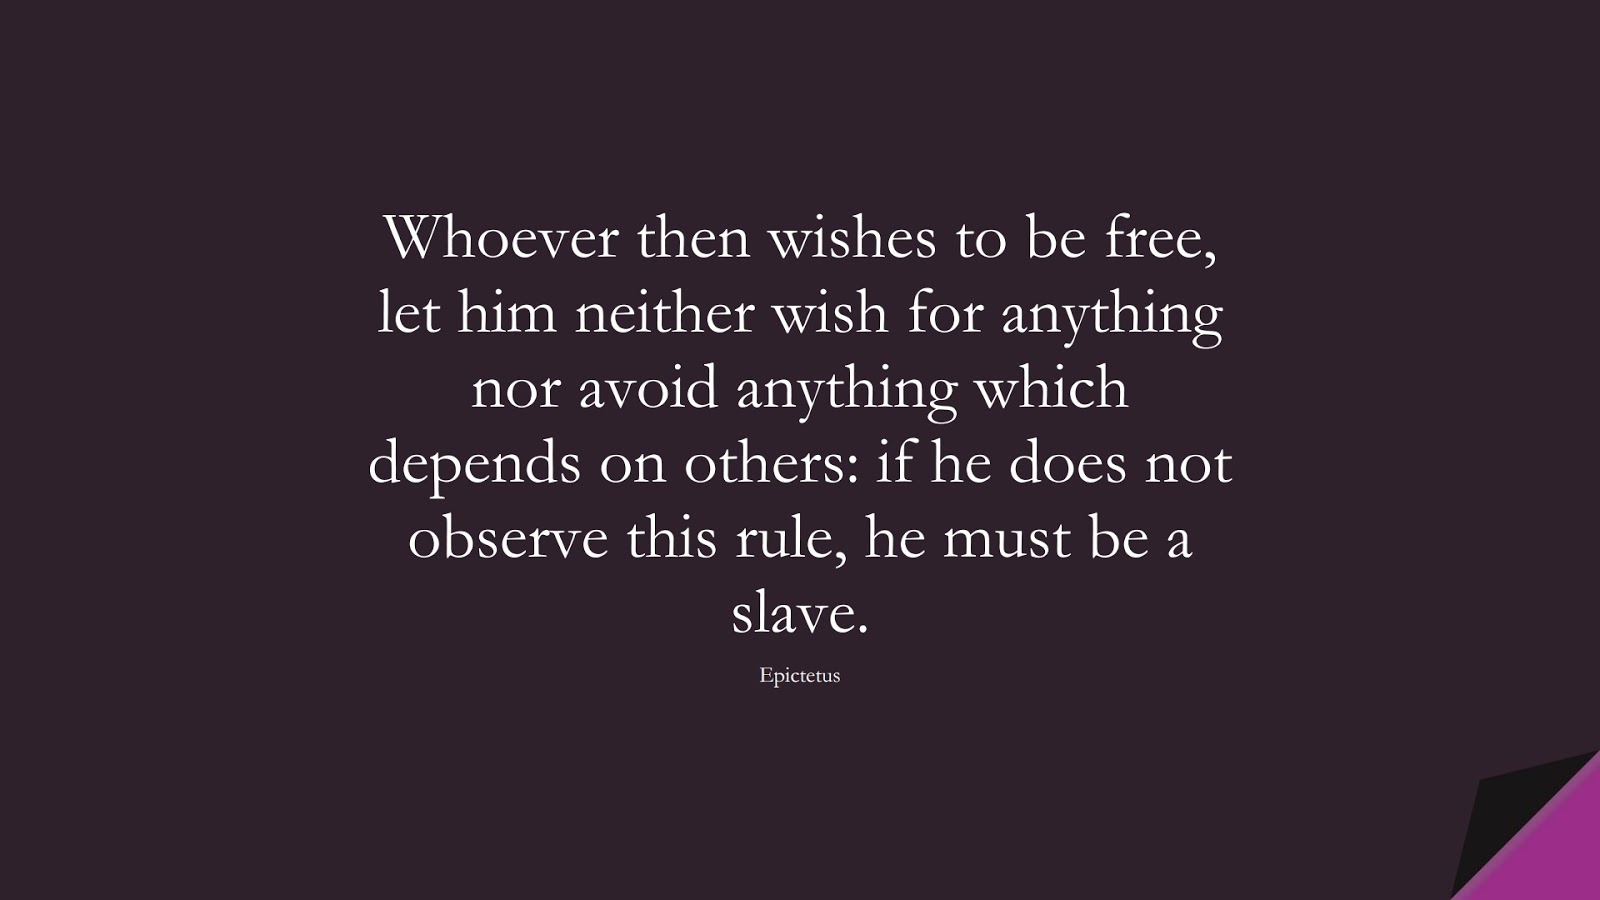 Whoever then wishes to be free, let him neither wish for anything nor avoid anything which depends on others: if he does not observe this rule, he must be a slave. (Epictetus);  #BeingStrongQuotes